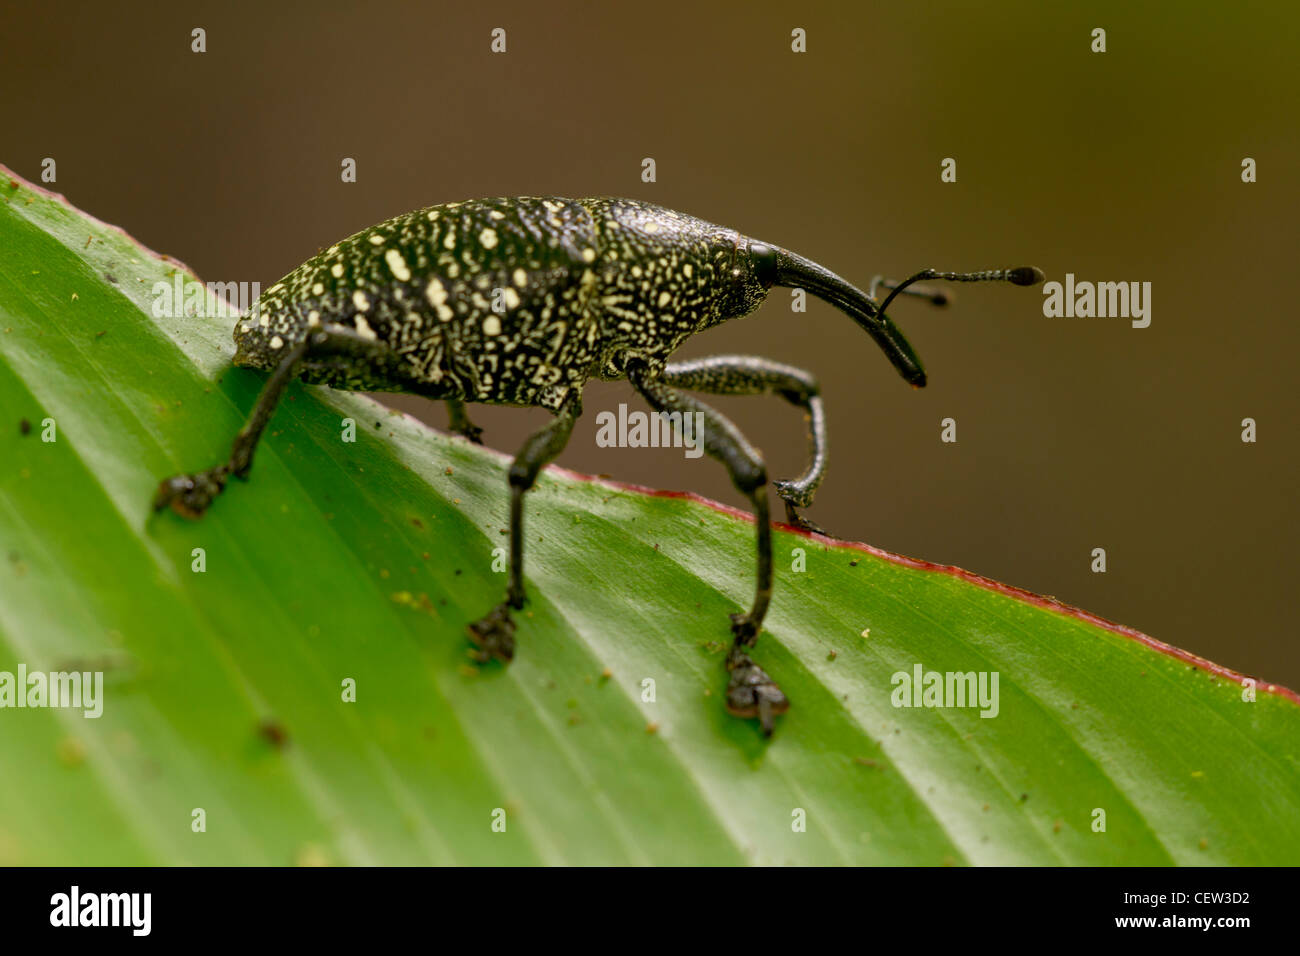 spotted weevil from rainforest, Selva Verde, Costa Rica Stock Photo